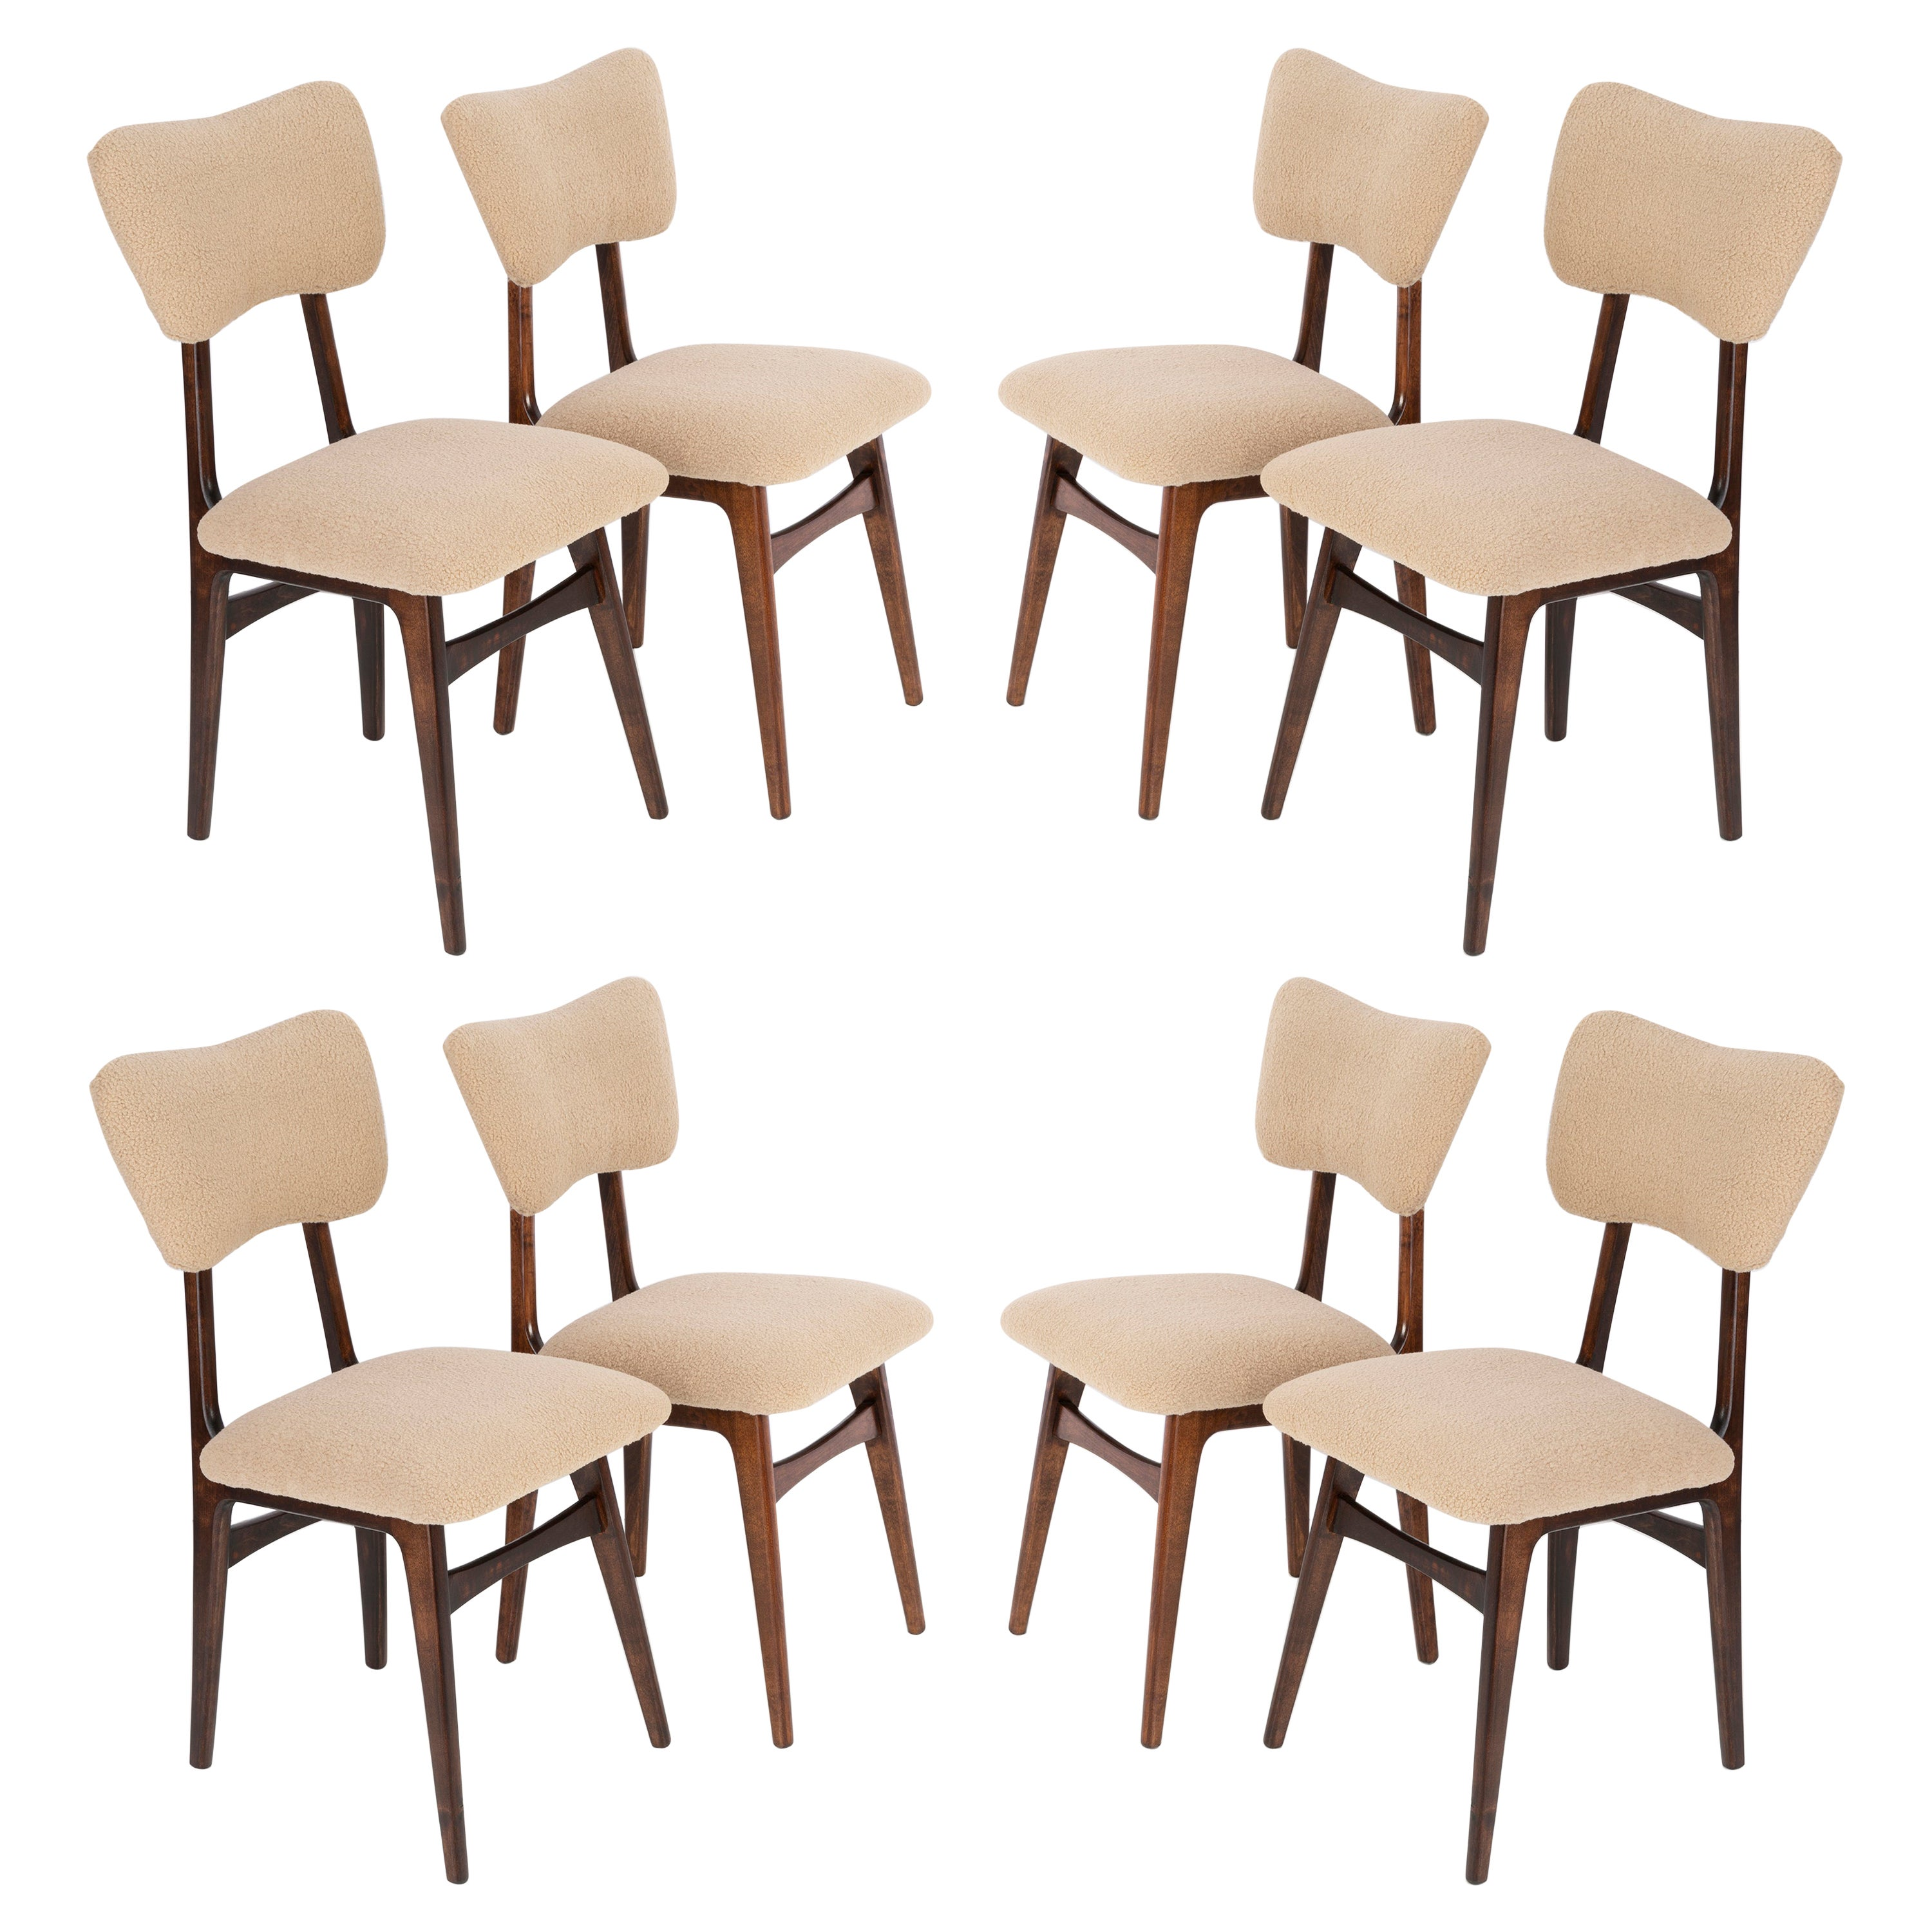 Set of Eight 20th Century Camel Boucle Chairs, 1960s